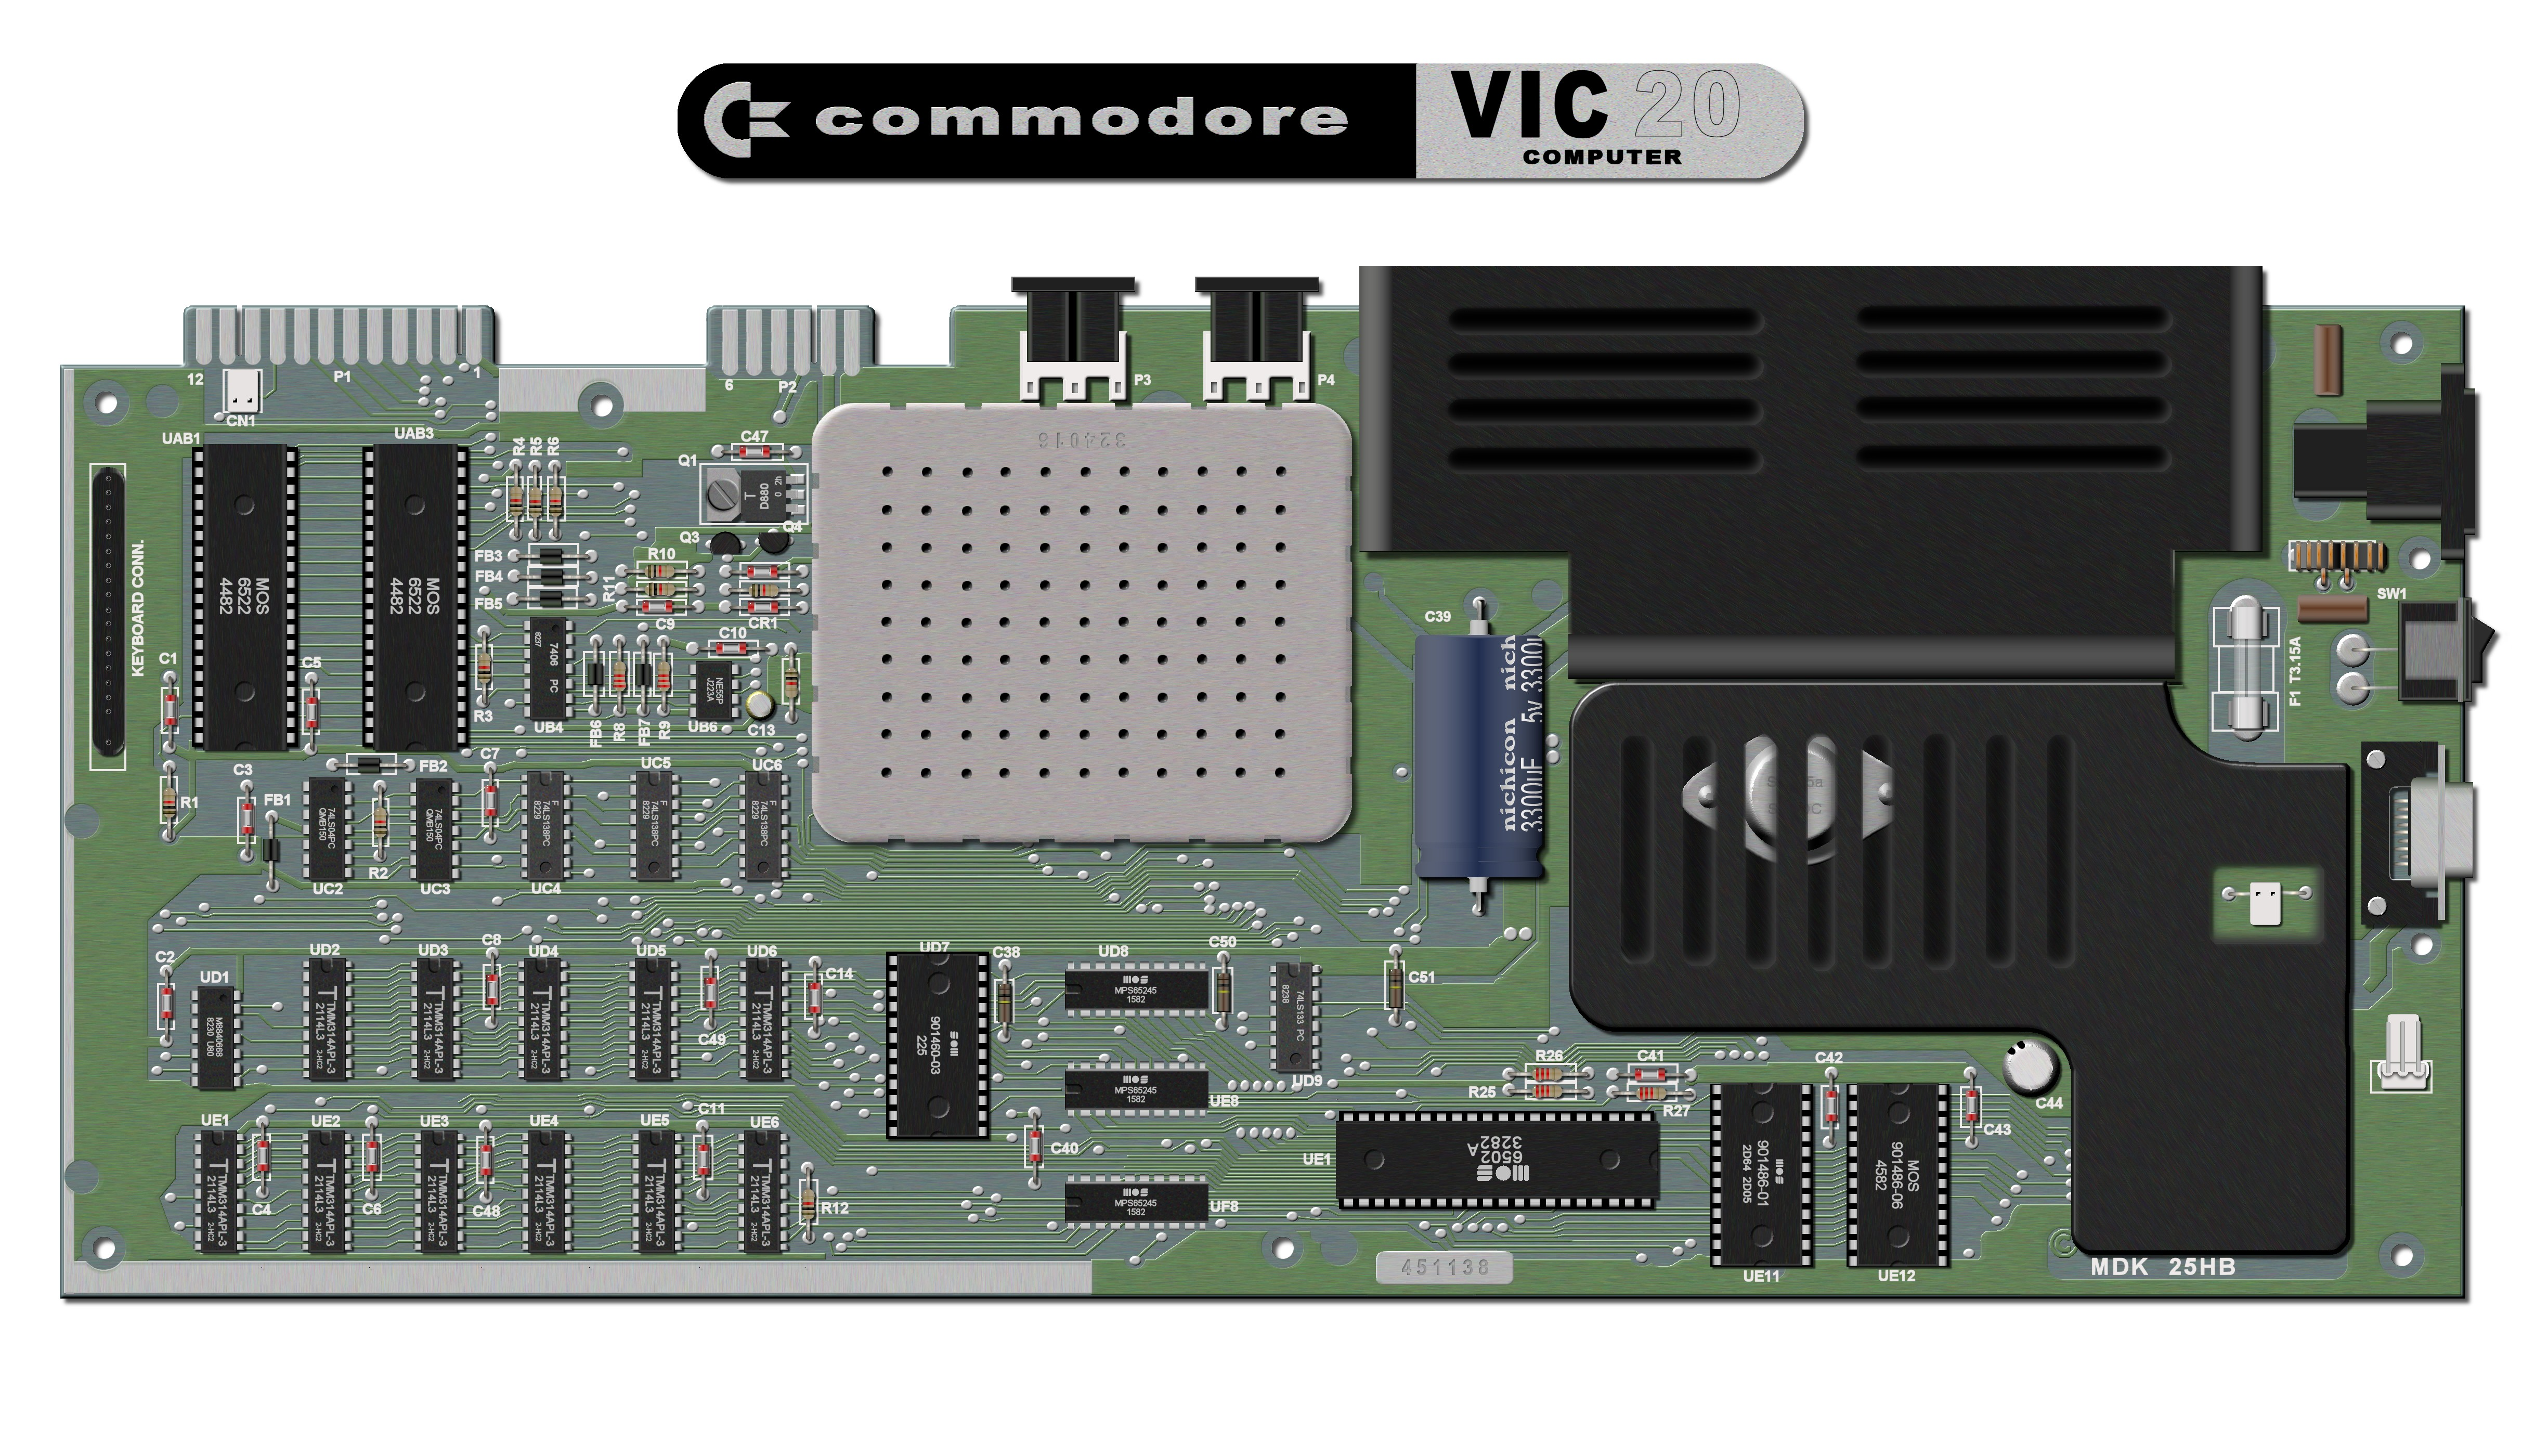 Vic-20 Circuit Board image showing chip layout?